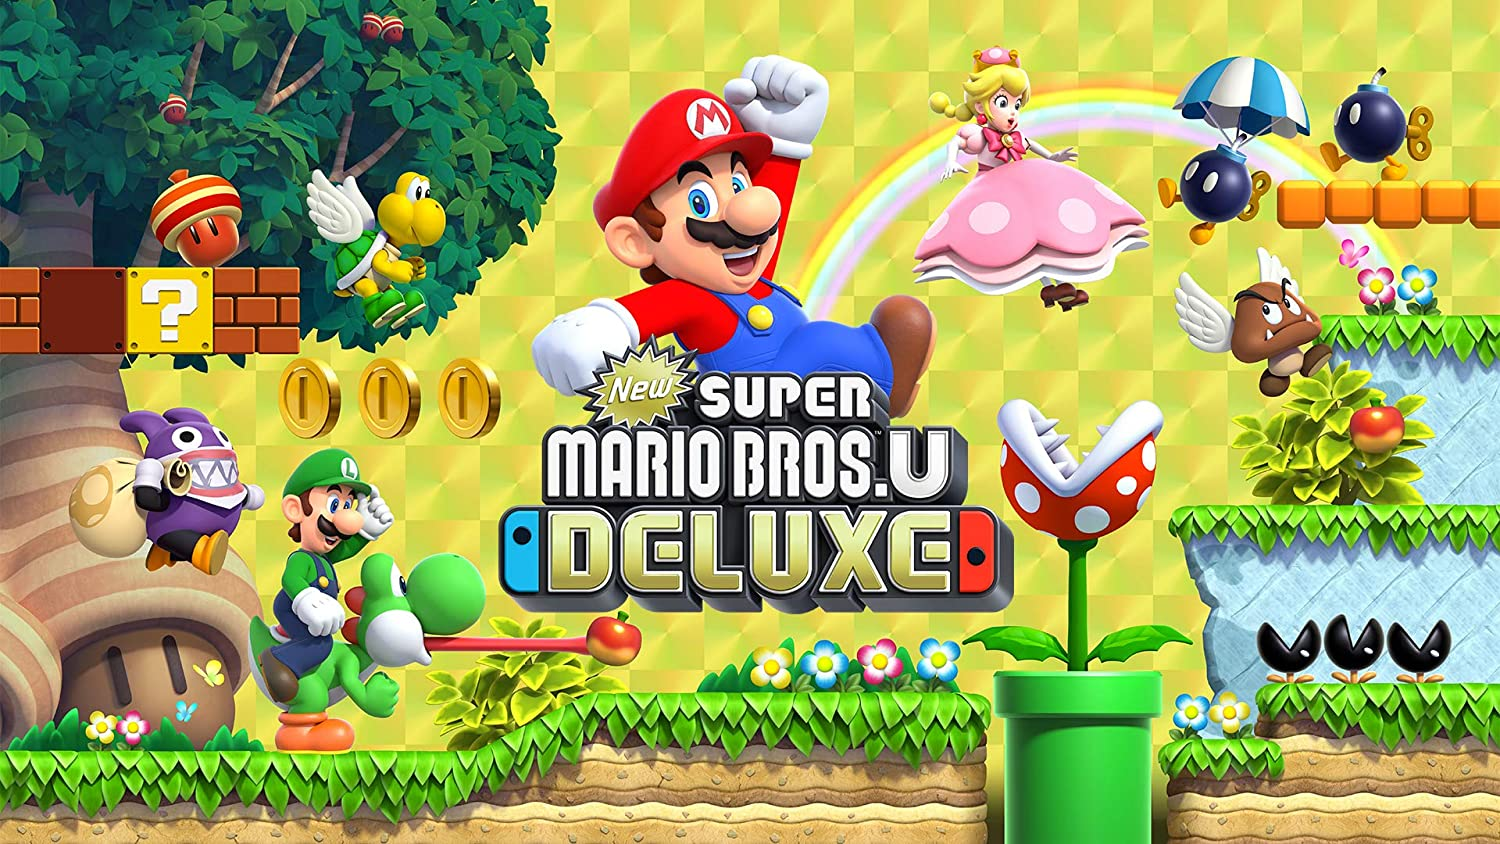 New Super Mario Bros U Deluxe [Nintendo Switch]